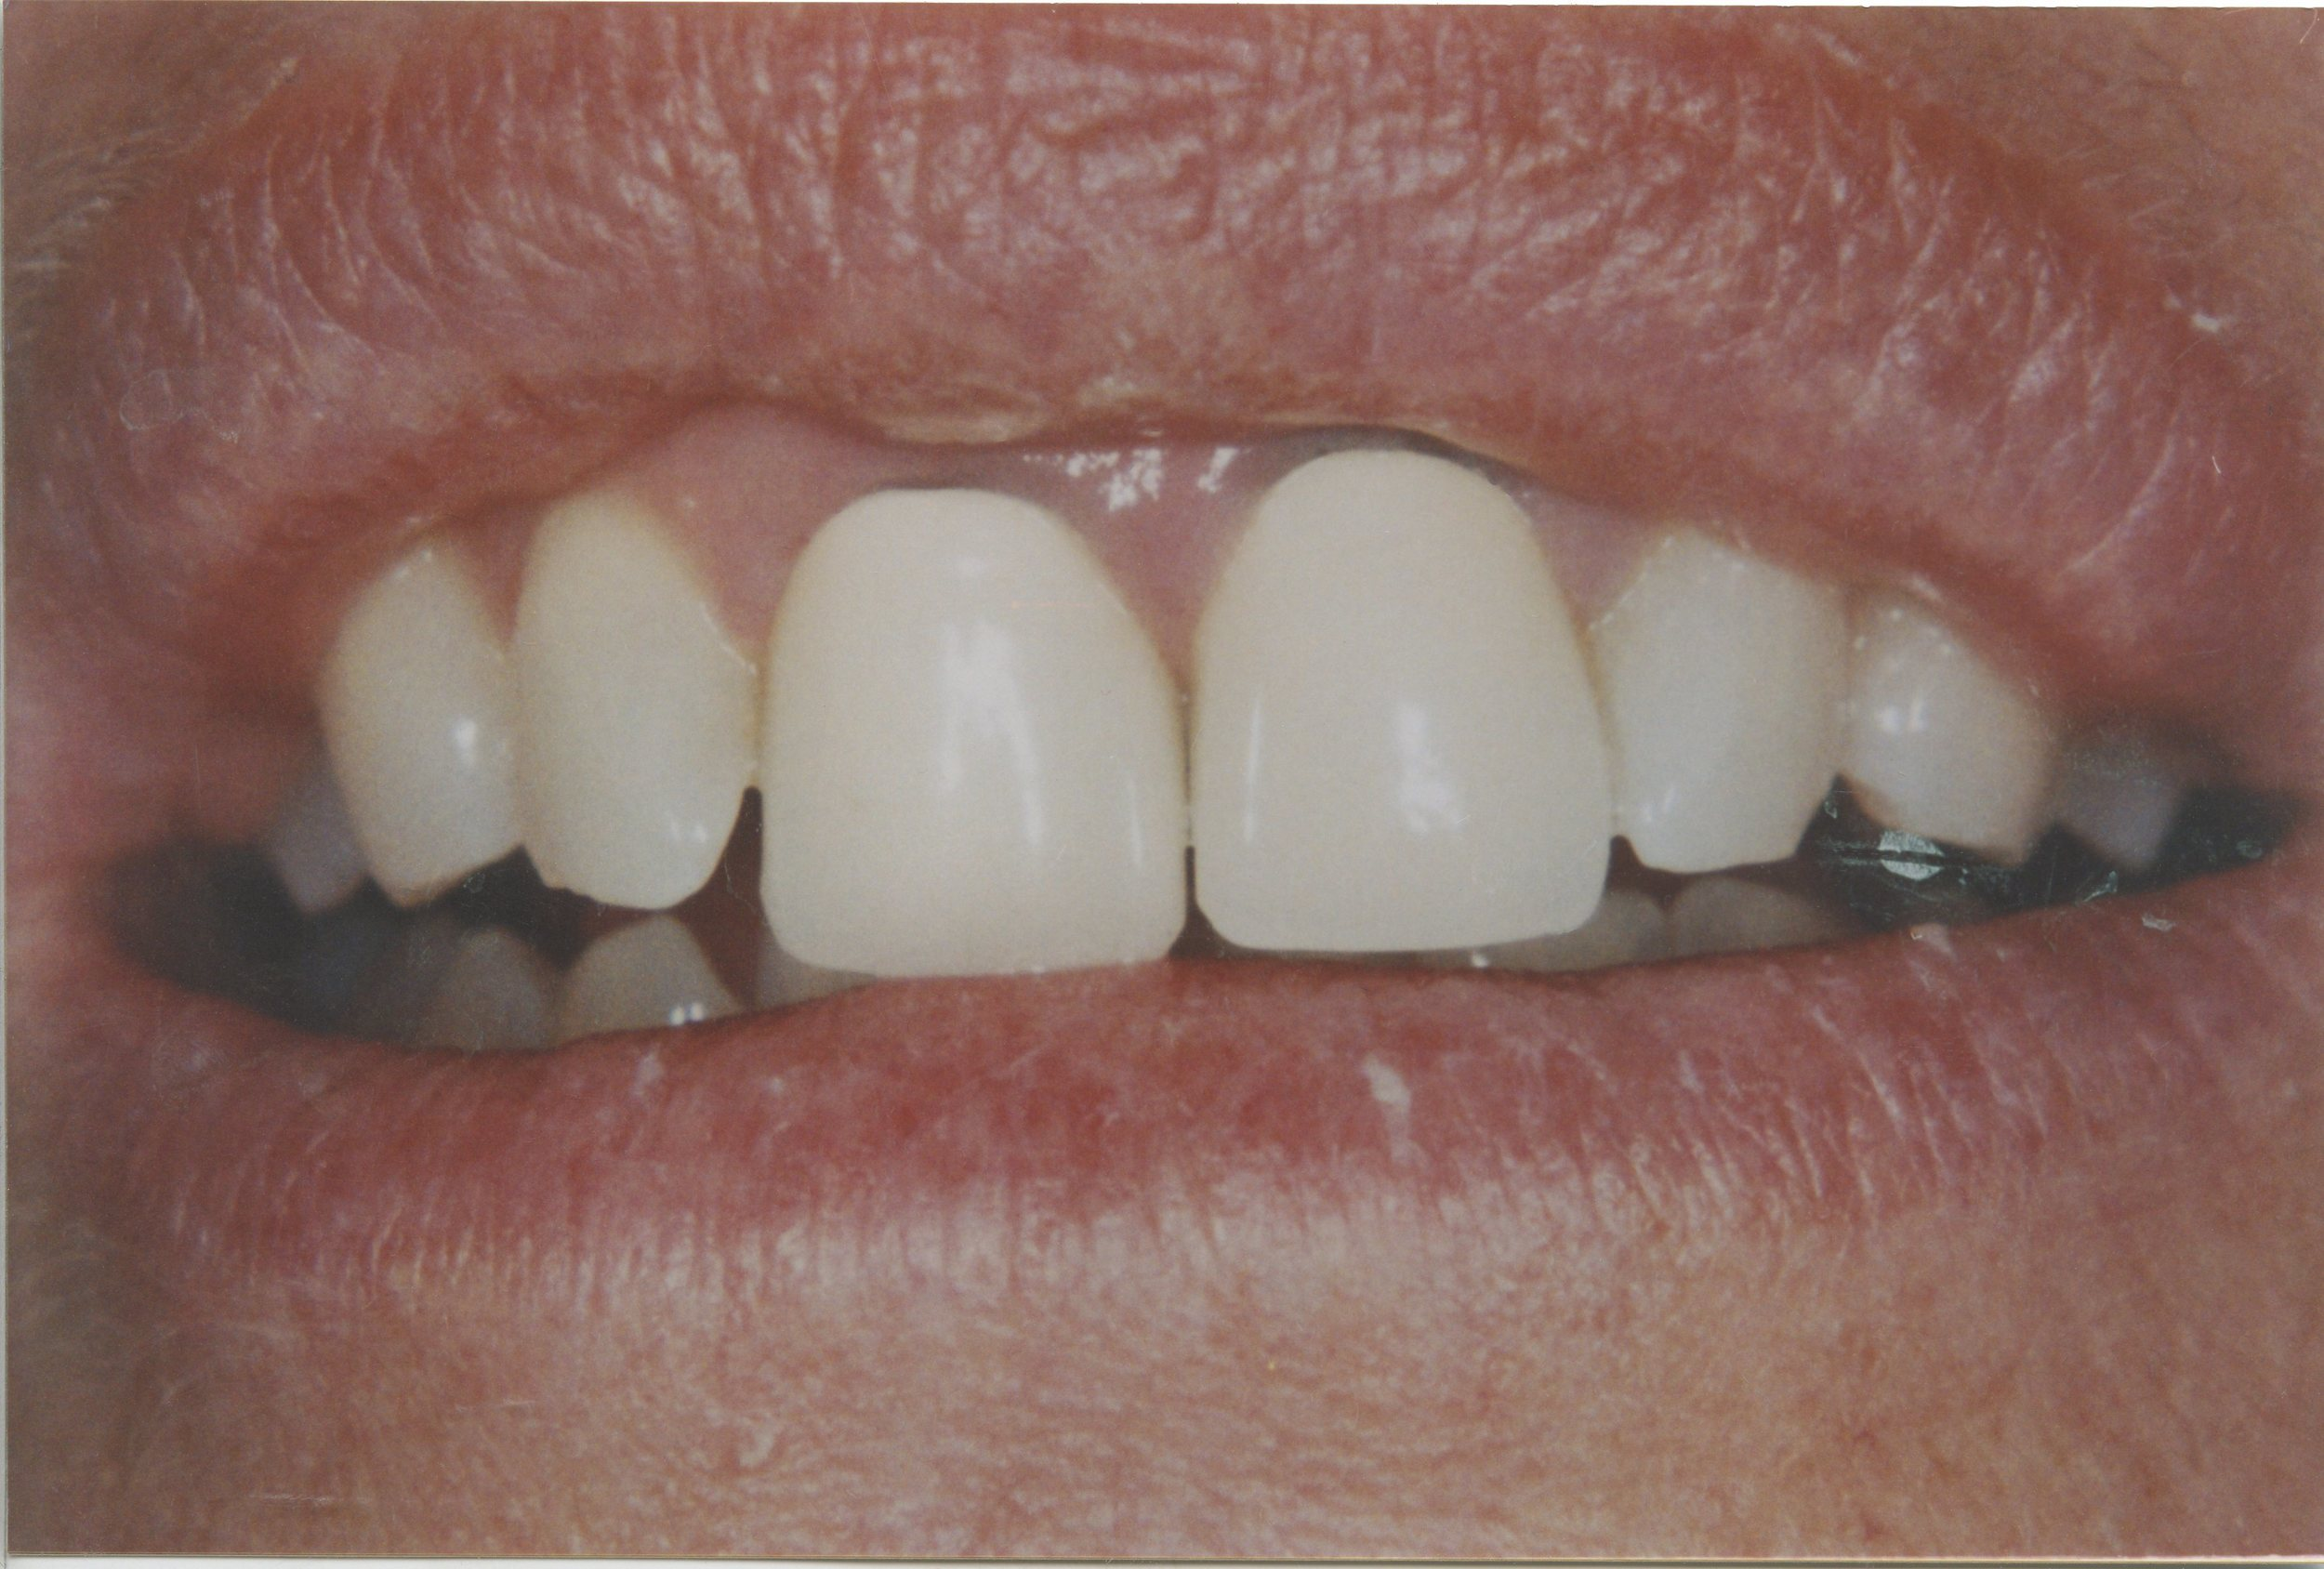 J.P. had some old PFM's (Porcelain Fused to Metal crowns) that we replaced with nice all porcelain crowns